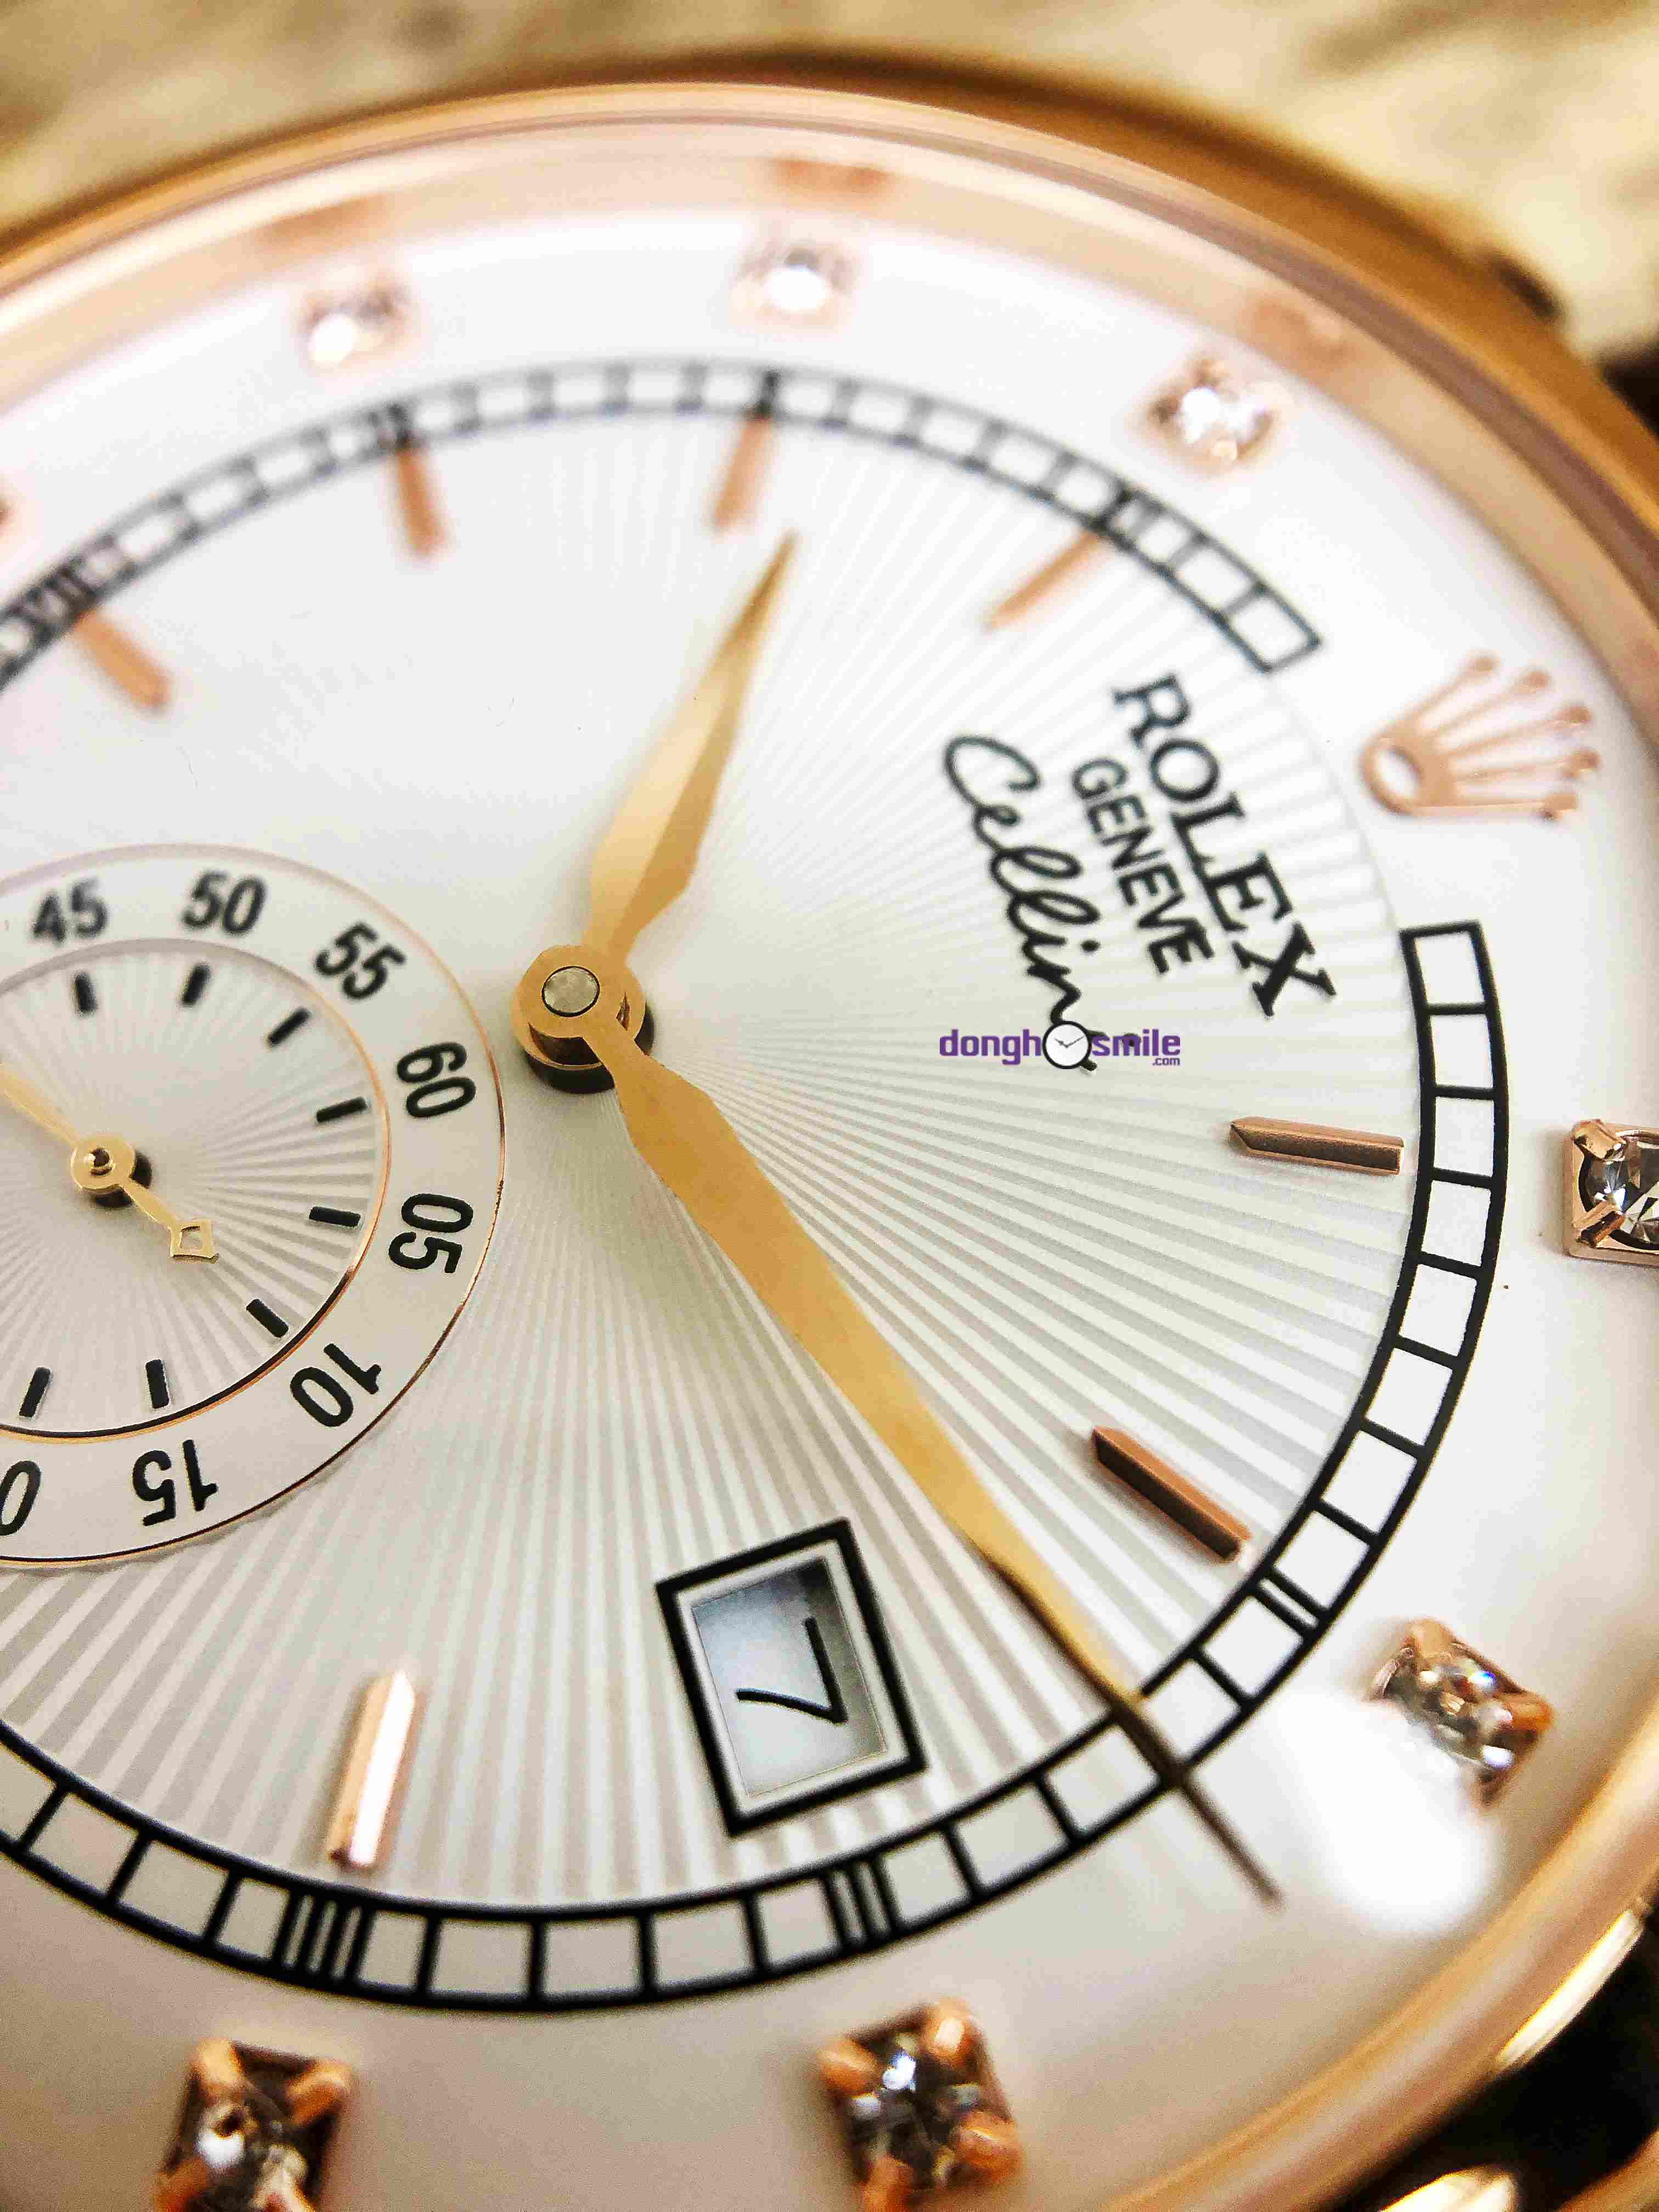 dong-ho-rolex-cellini-nam-may-tu-dong-a-rl05-03